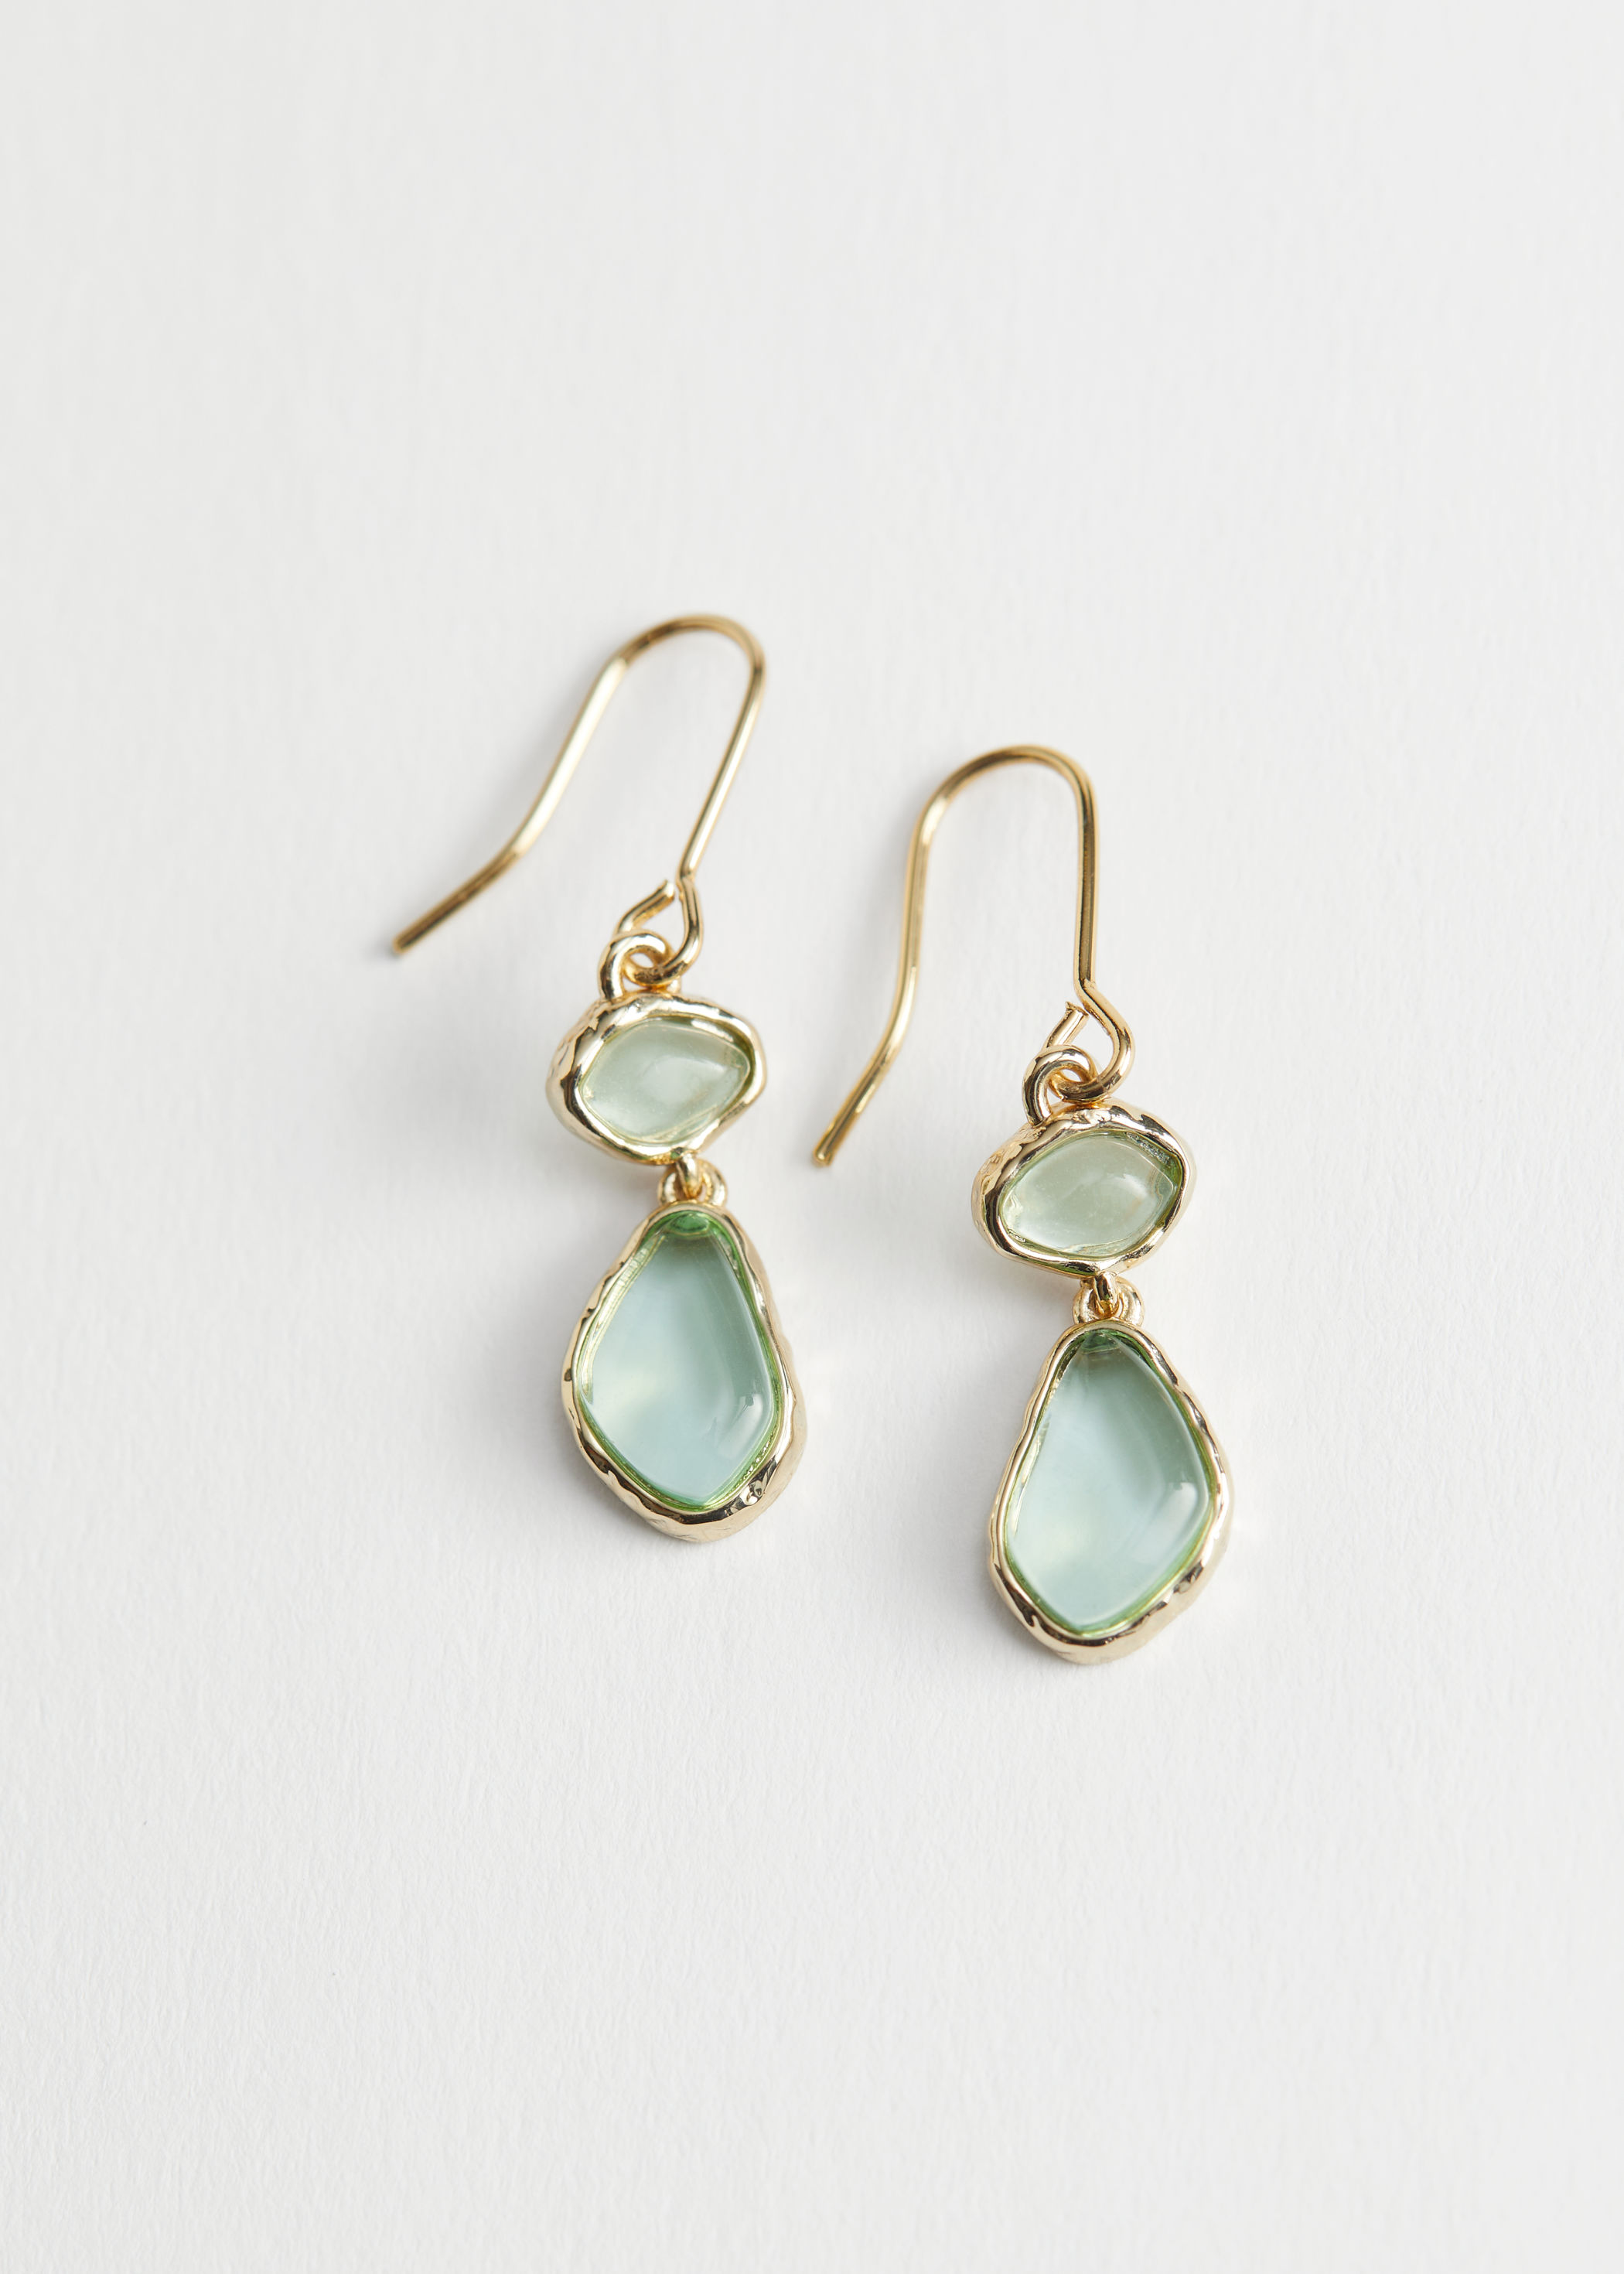 Mini stone pendant earrings - And other Stories